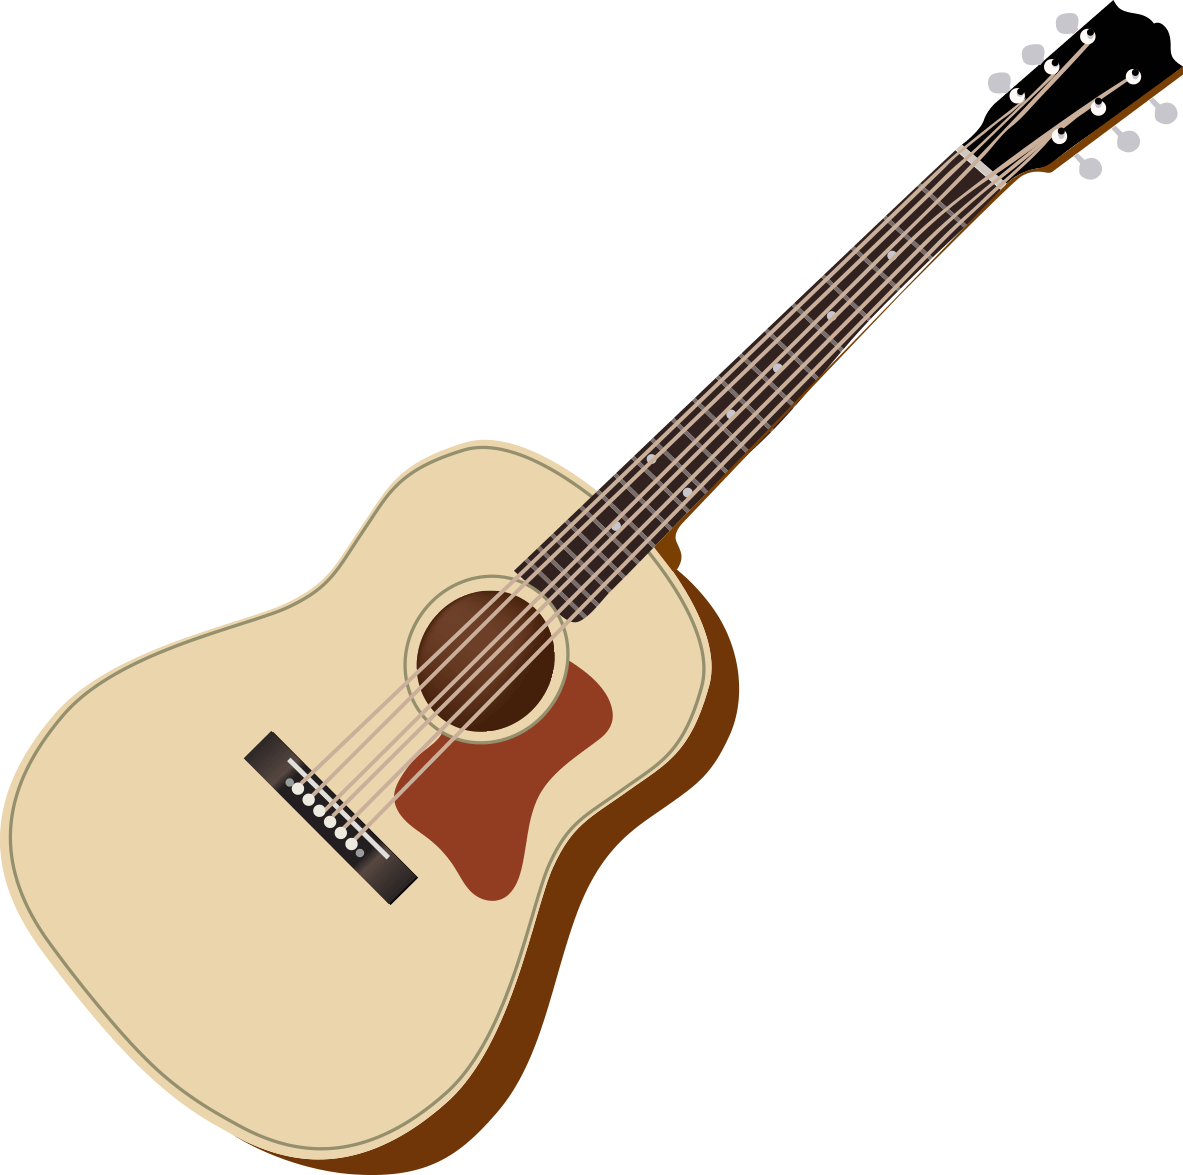 Buncee library skills that. Clipart rock instruments